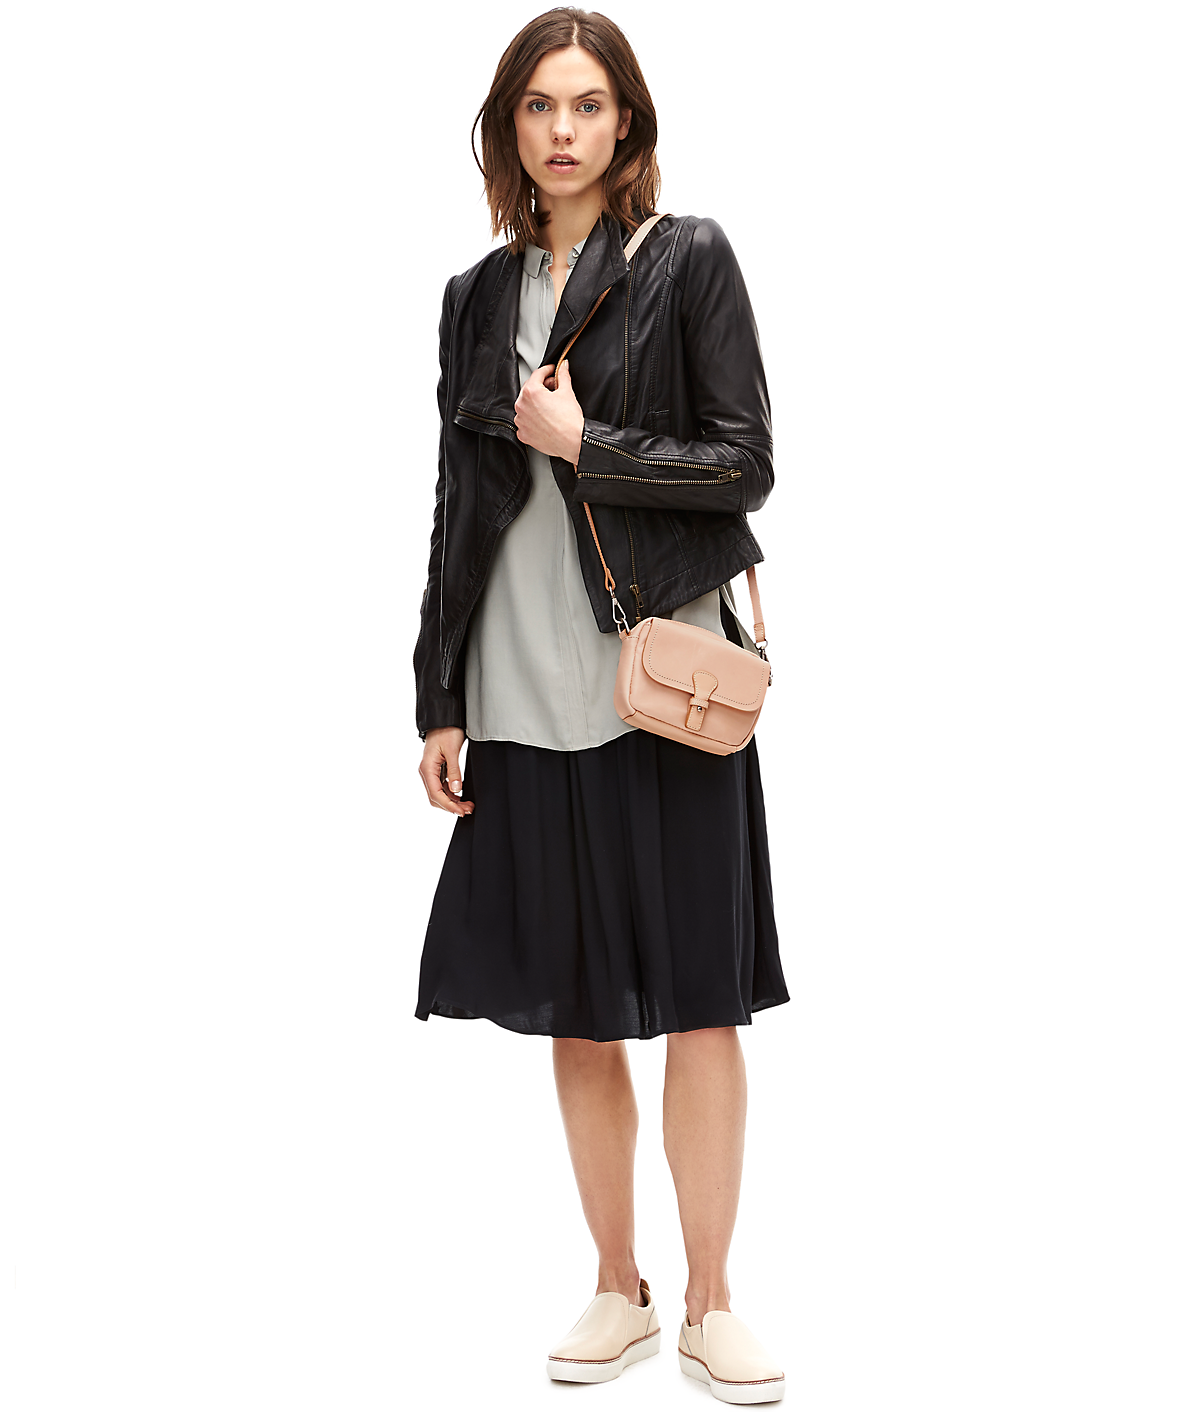 Mailin cross-body bag from liebeskind